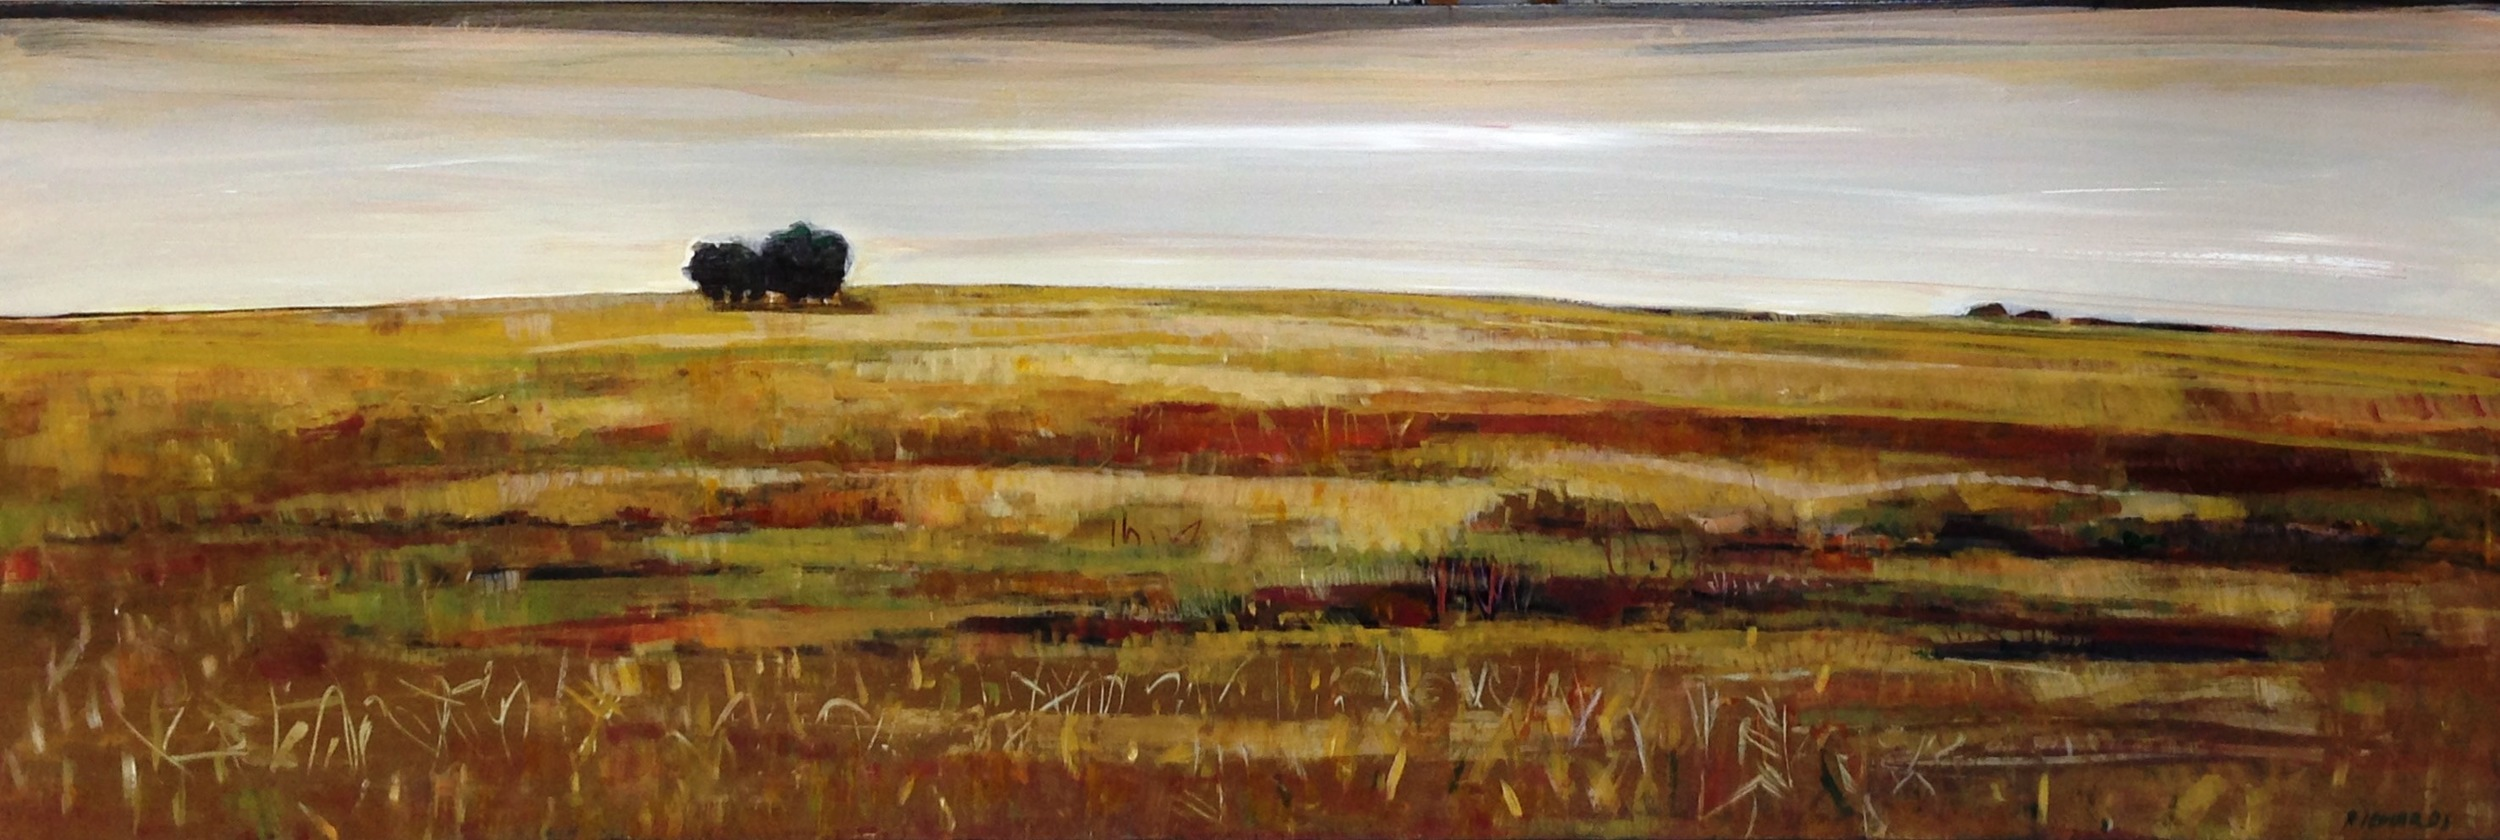 "Lori Richards,  Warm Fields (After the Harvest) , Acrylic on Panel, 16"" x 48"""